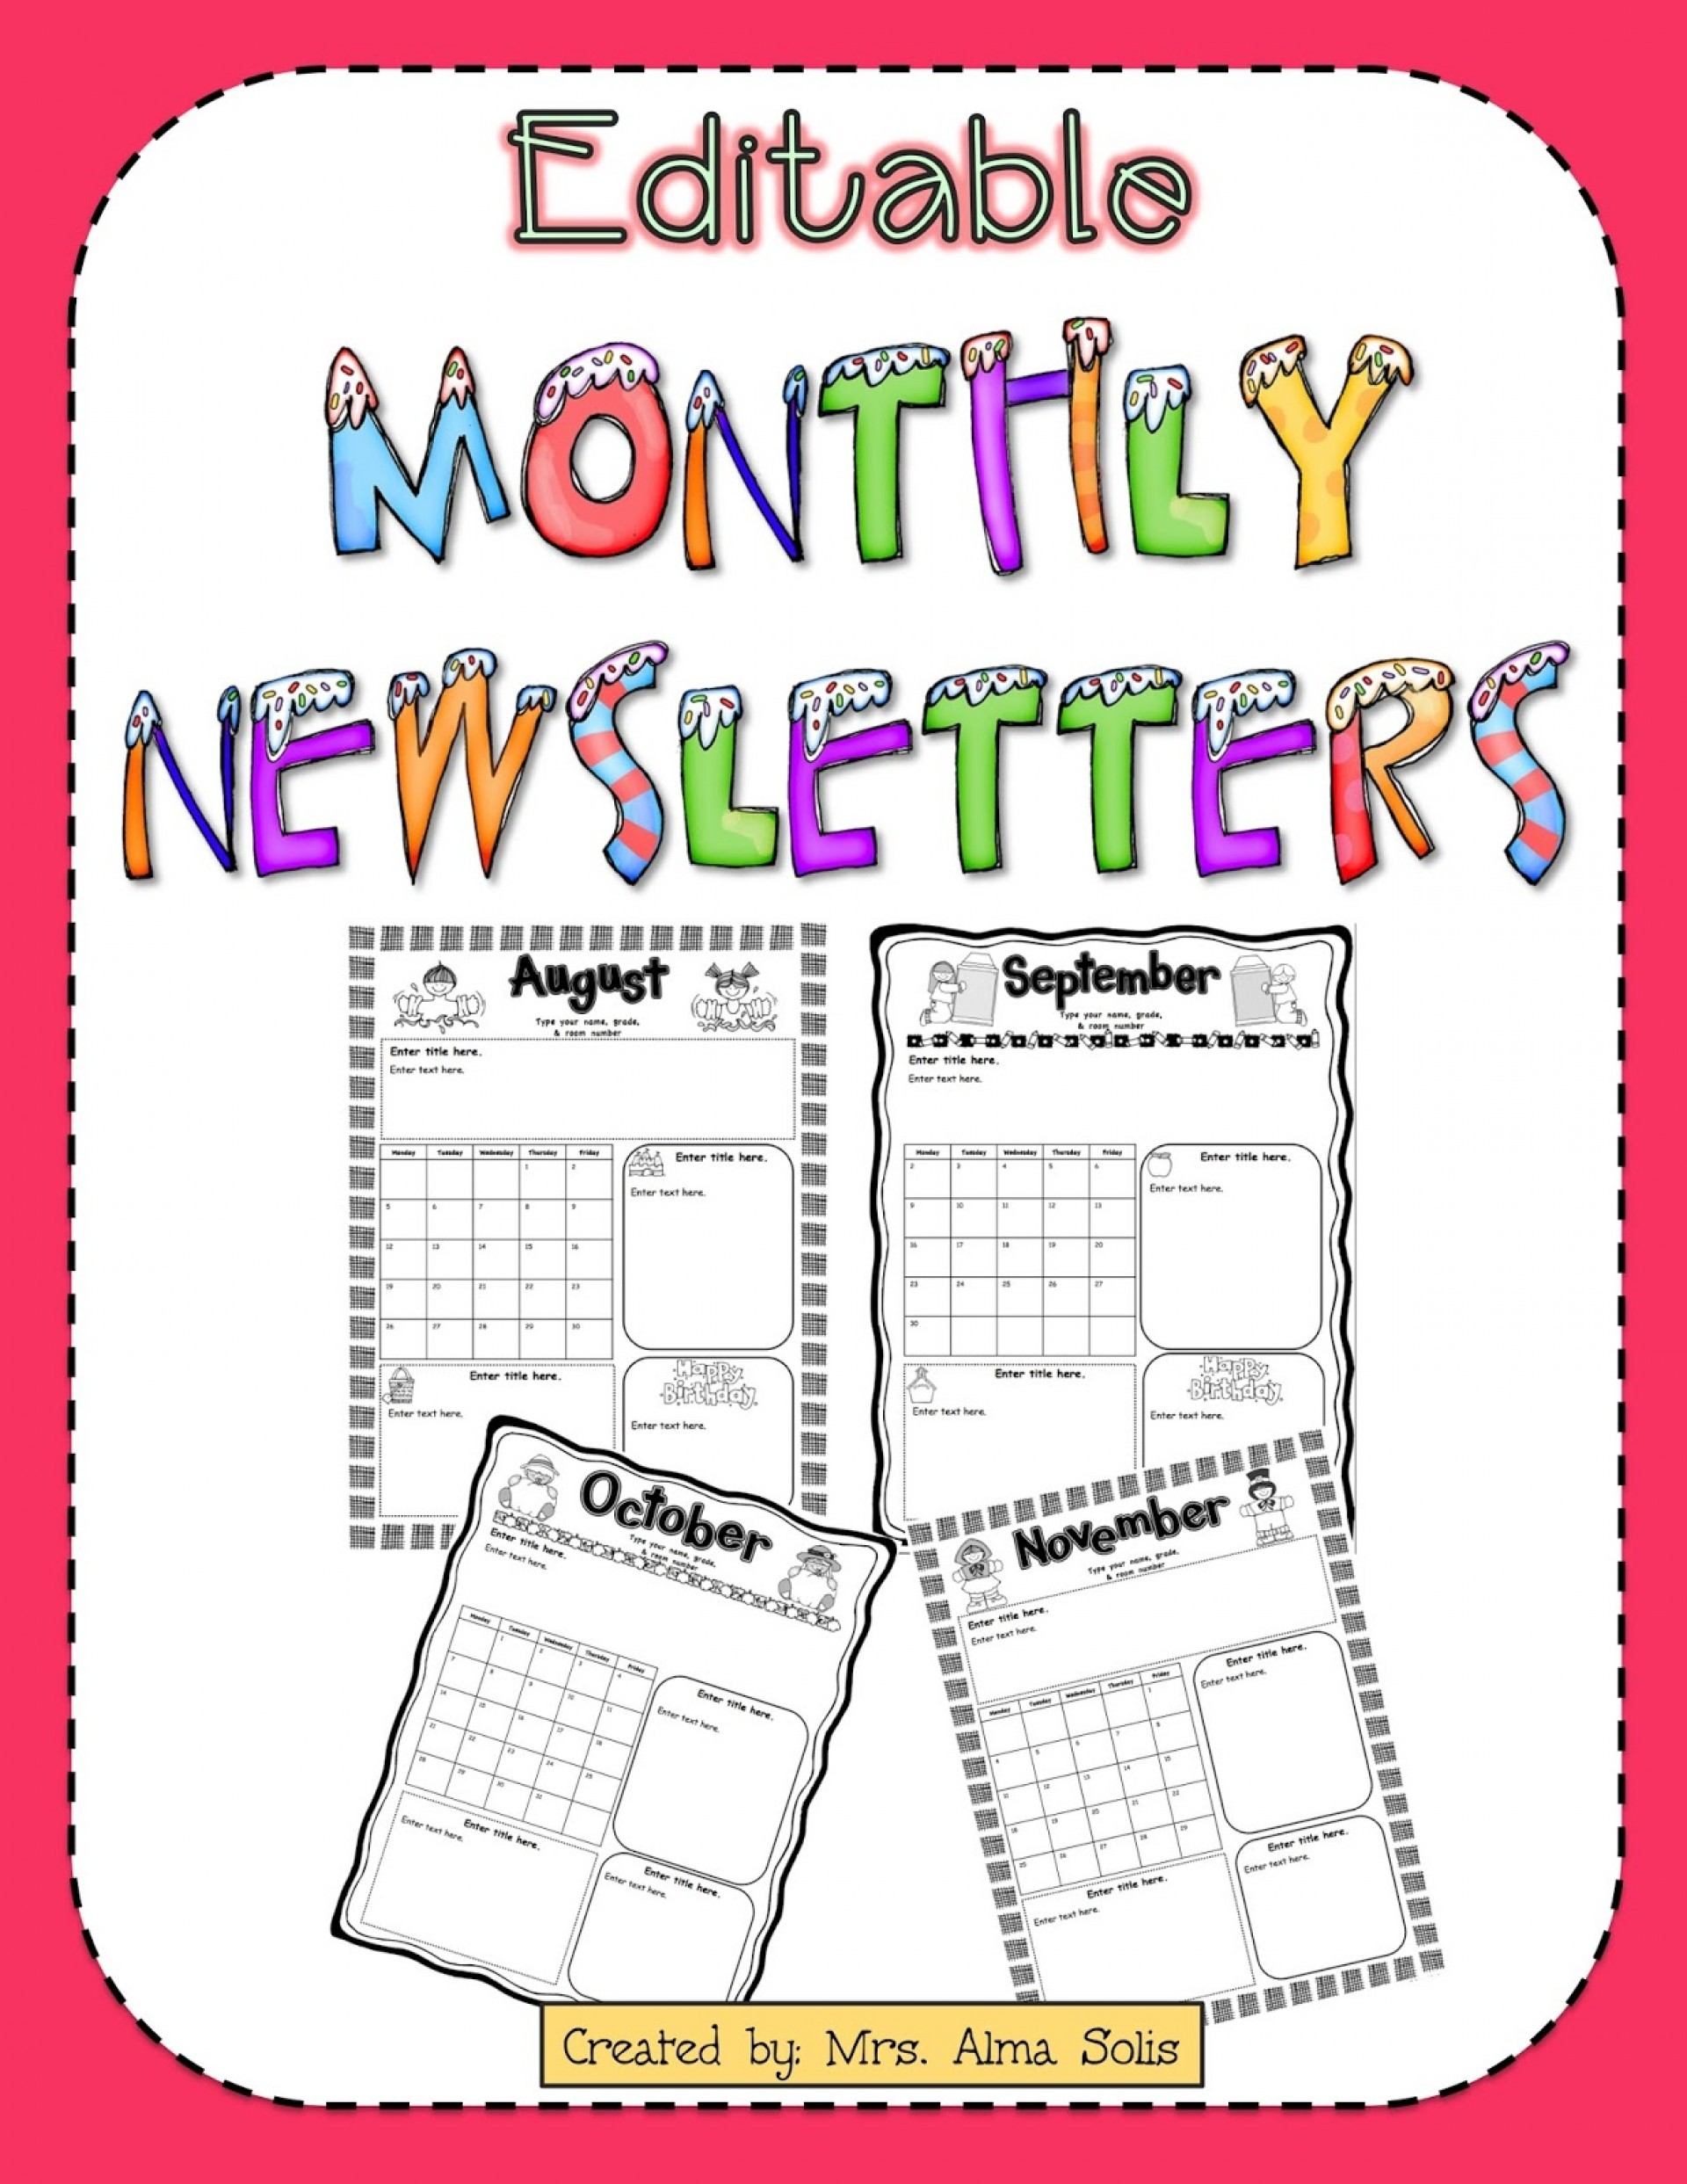 Monthly Newsletter Newsletter Templates Word